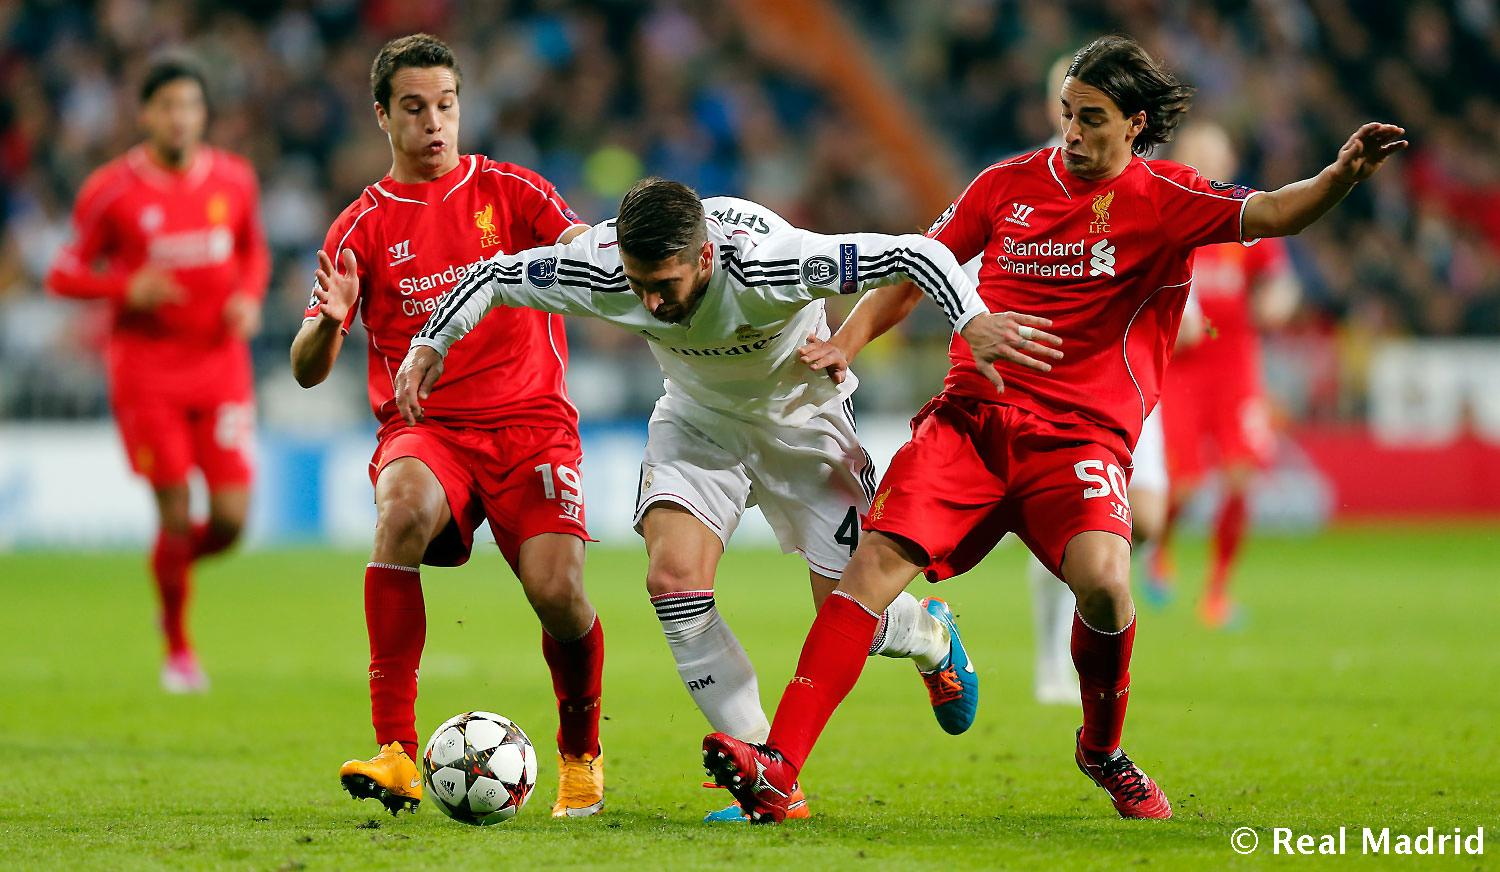 Real Madrid - Real Madrid - Liverpool - 04-11-2014